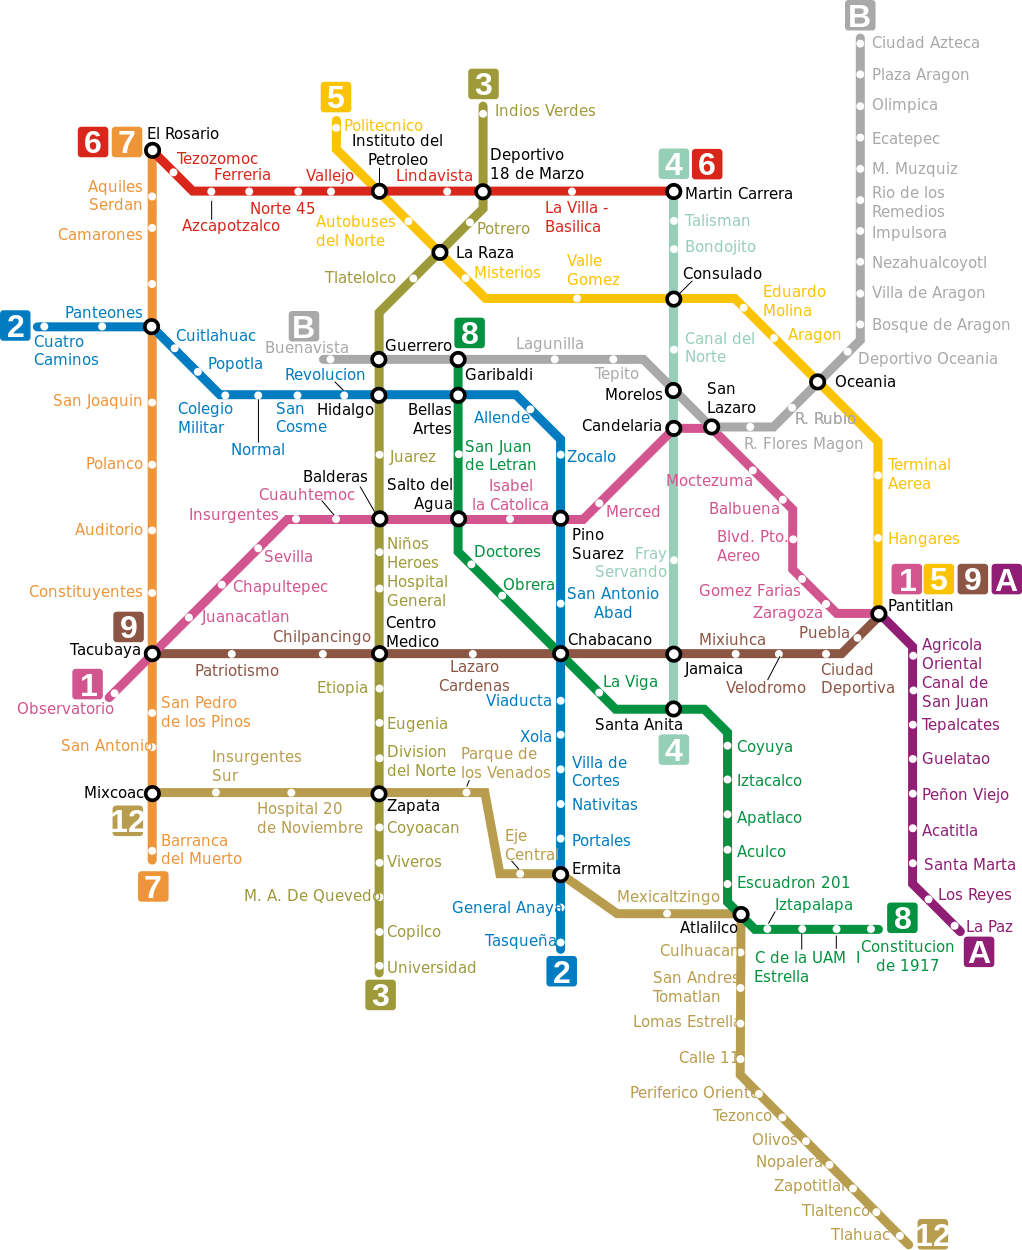 Ideal Nyc Subway Map Efficient.A Quick Dirty Insider Guide To The Best Neighbourhoods In Mexico